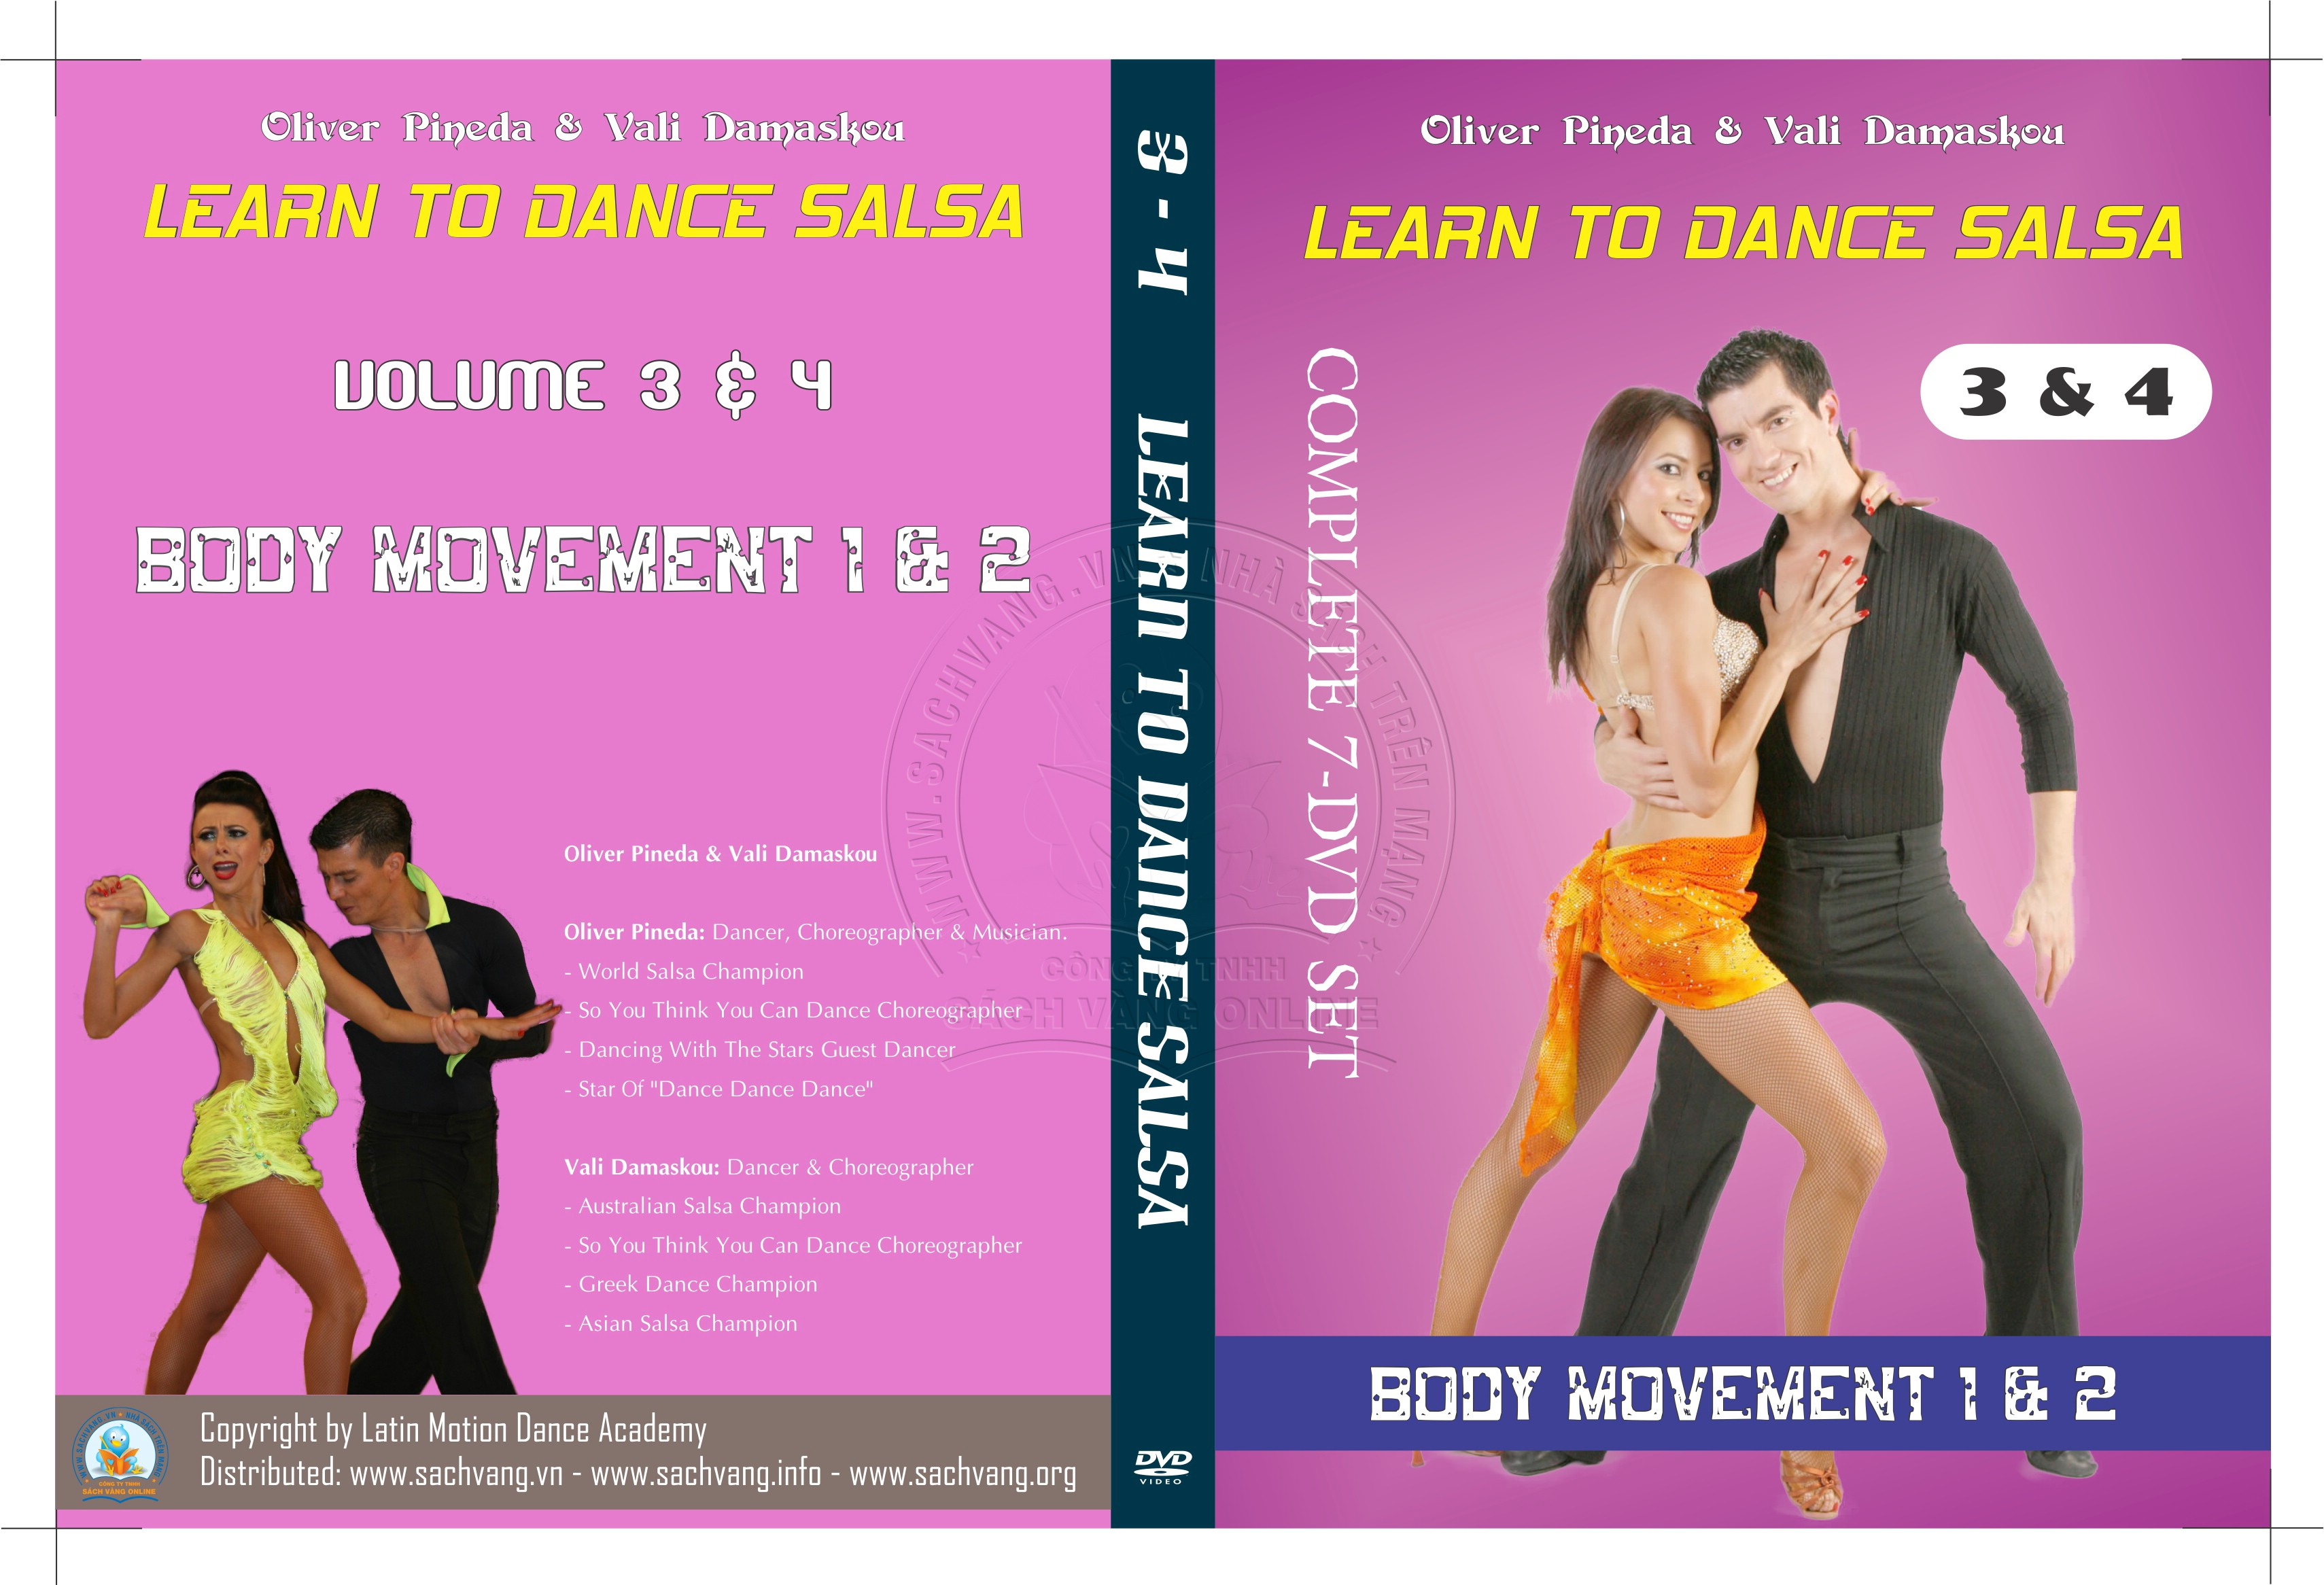 Learn To Dance Salsa with Oliver Pineda & Vali Damaskou 2